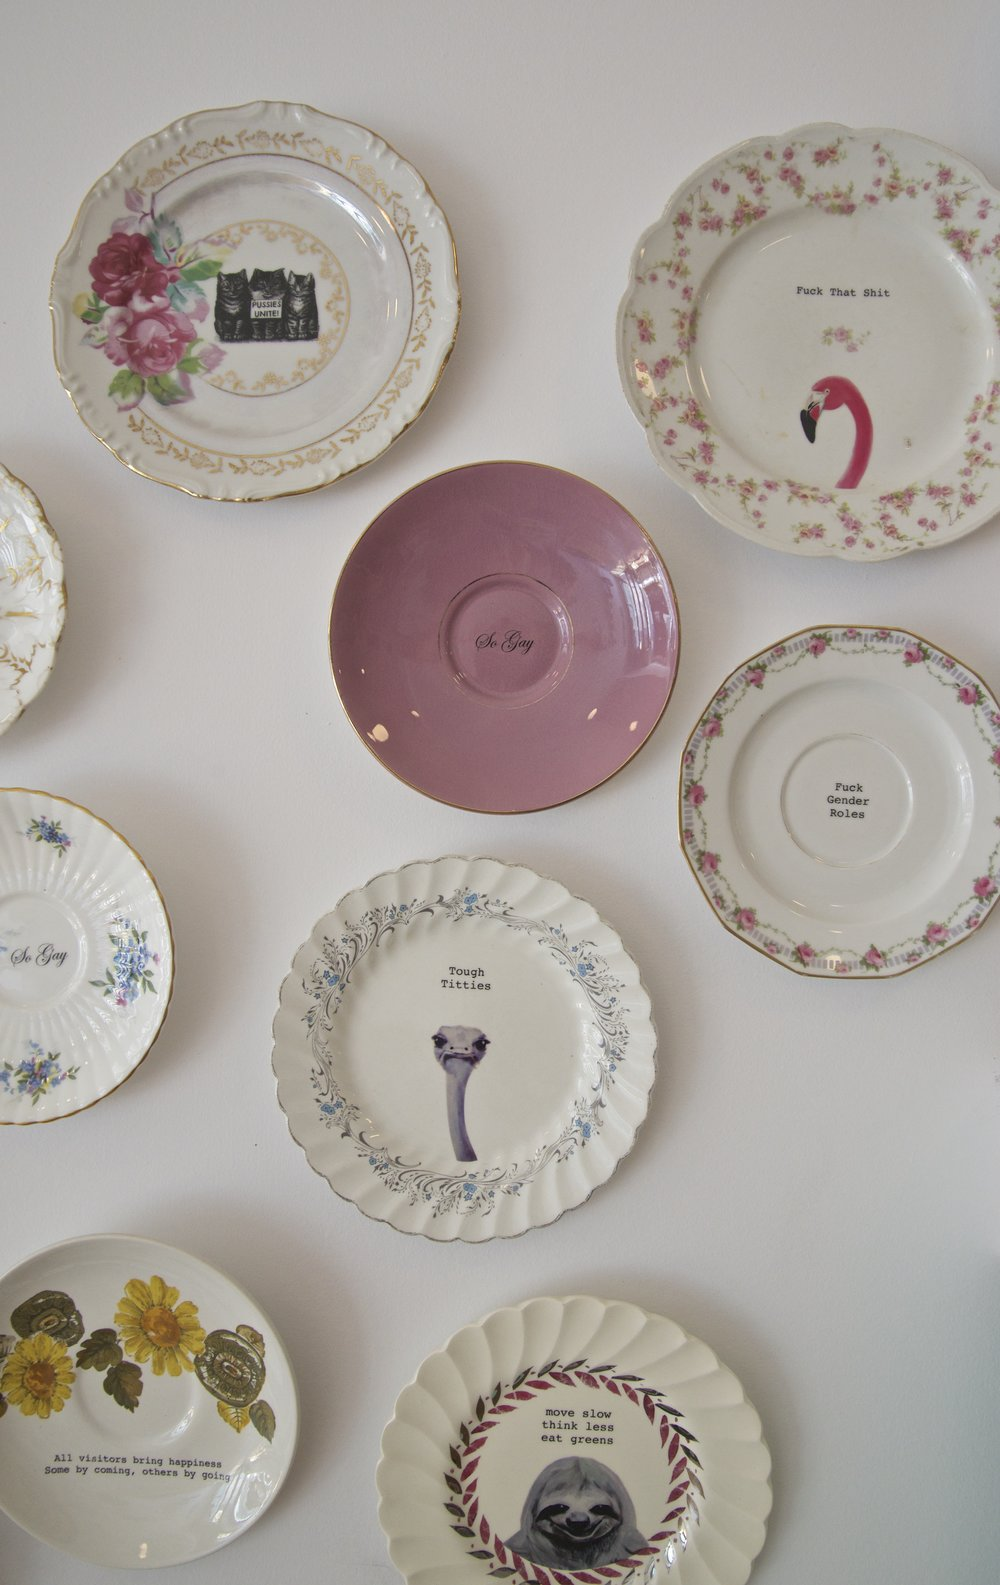 The plate wall by Lou Brown Vintage is so fun!